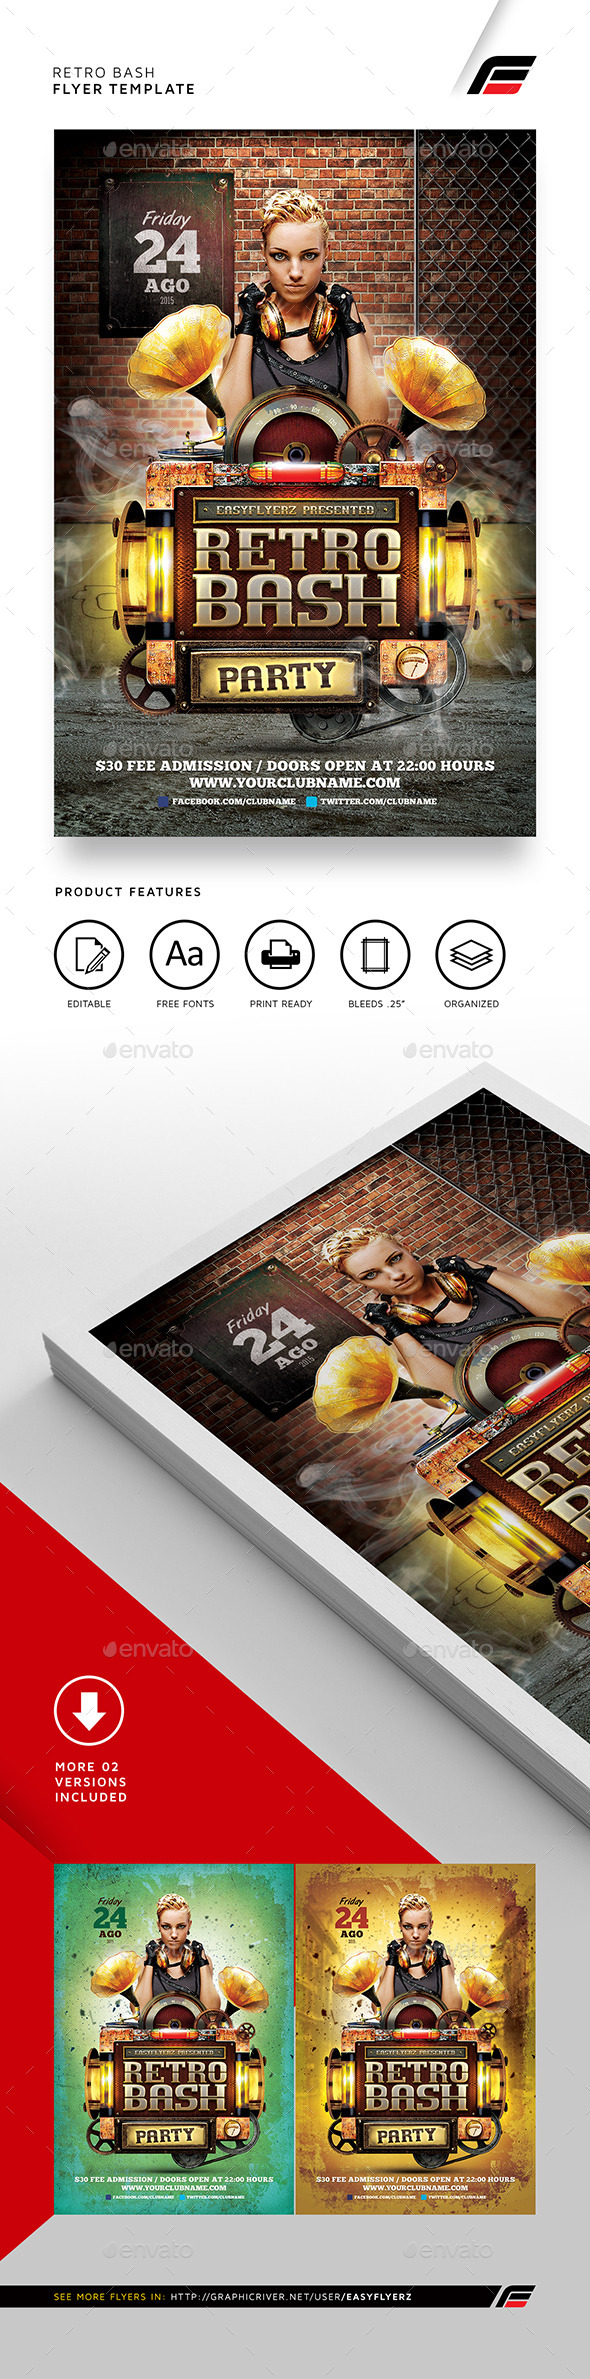 Retro Bash Flyer Template - Events Flyers